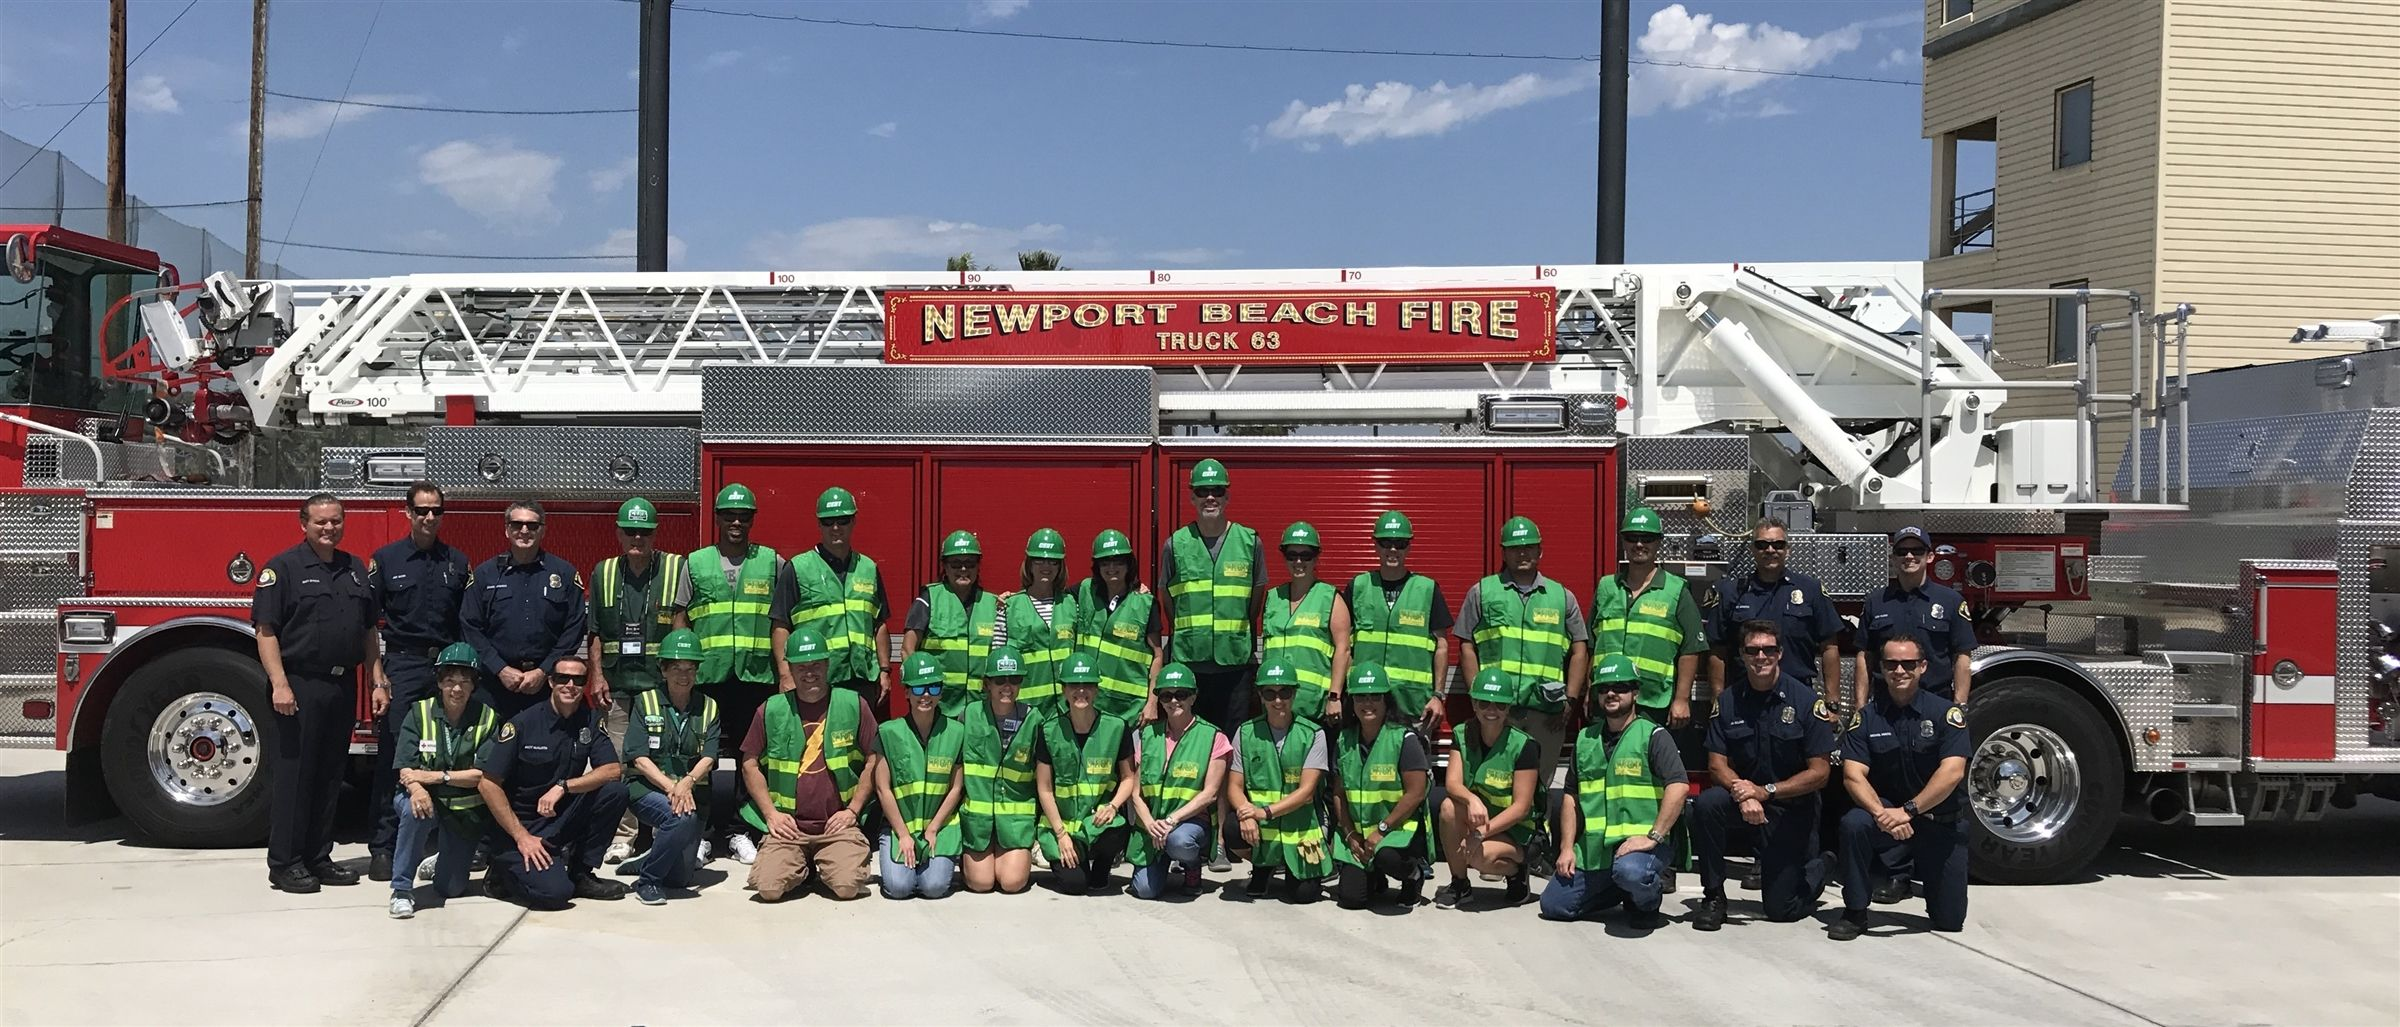 Sage Hill employees participate in the Newport Beach Fire Department's Community Emergency Response Team (CERT) training. Employees are also all trained in basic first aid and CPR.